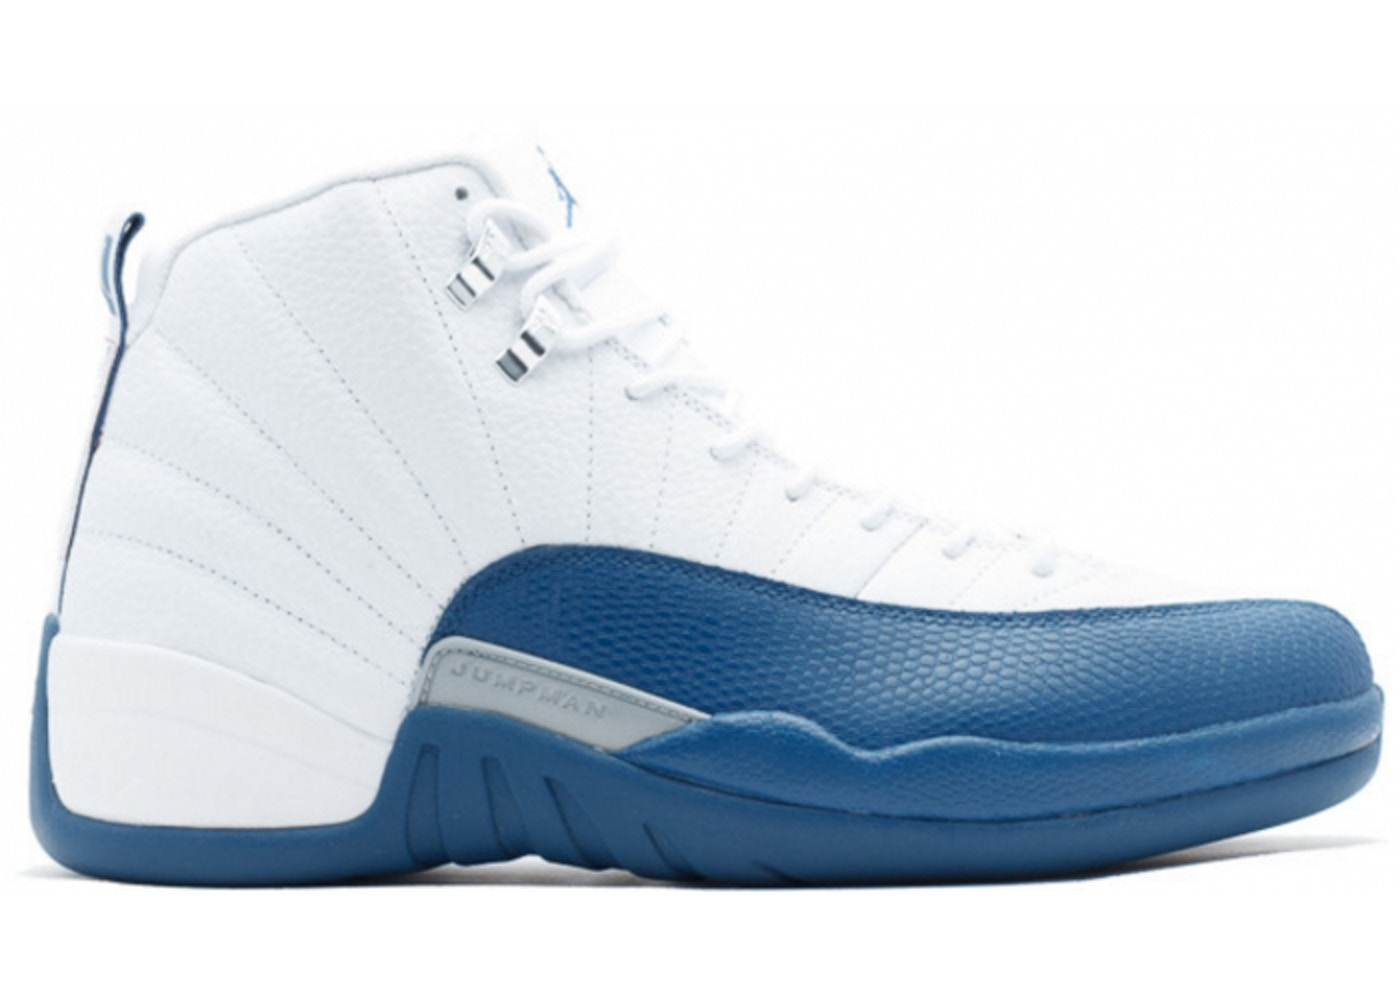 official photos 5fbea 1664b Jordan 12 Retro French Blue (2016) - 130690-113